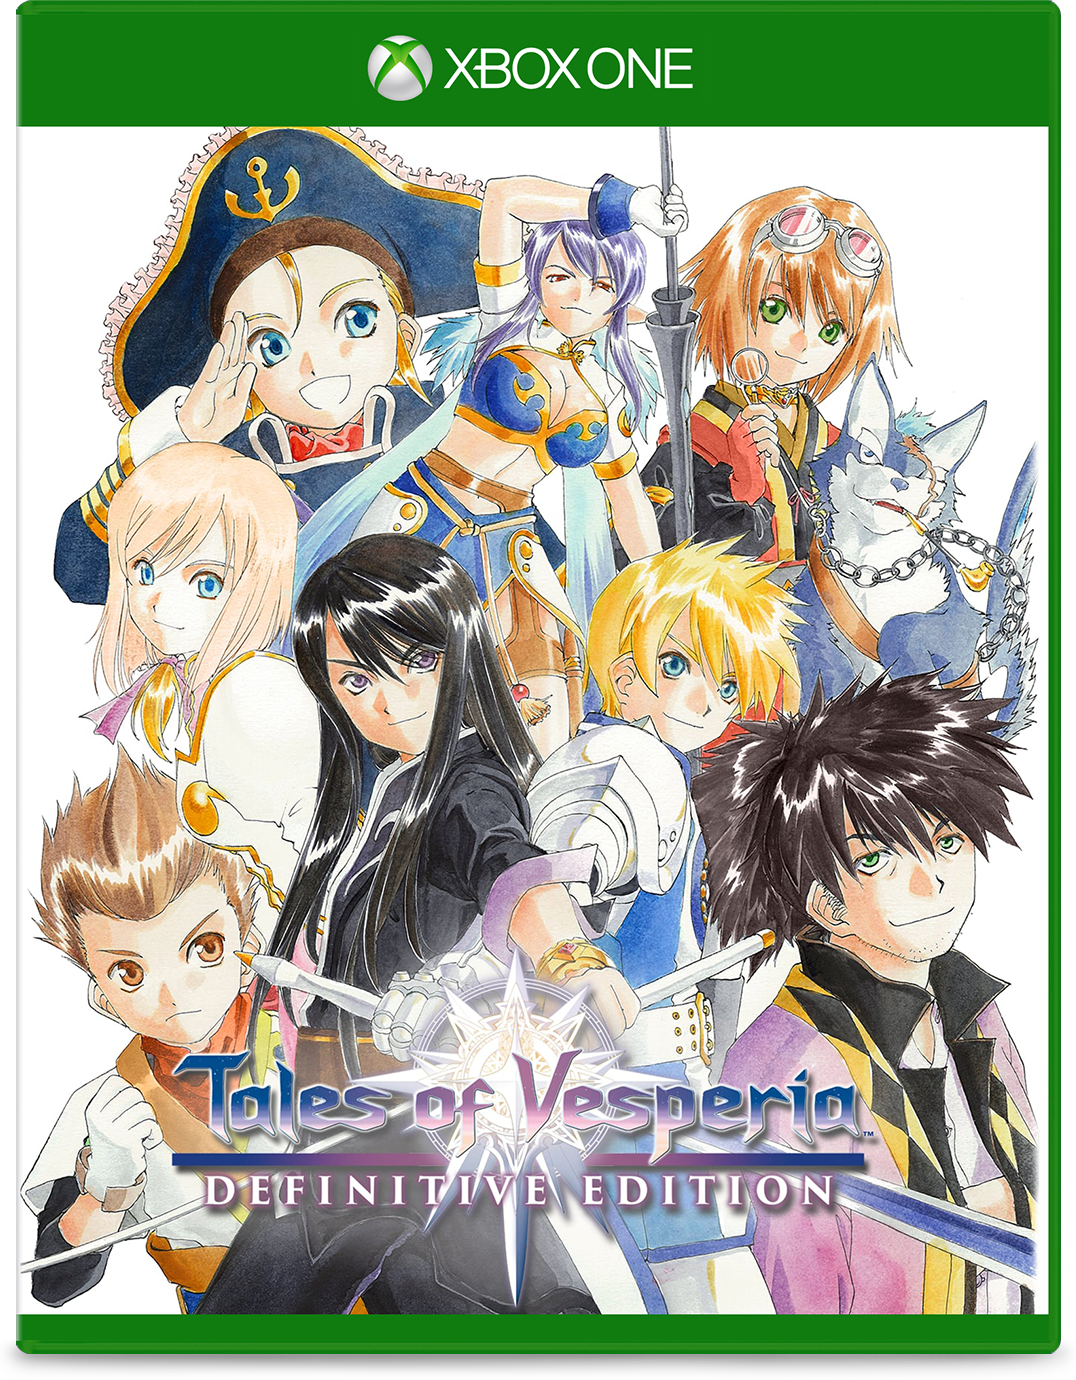 Cover of Tales of Vesperia Definitive Edition for Xbox One